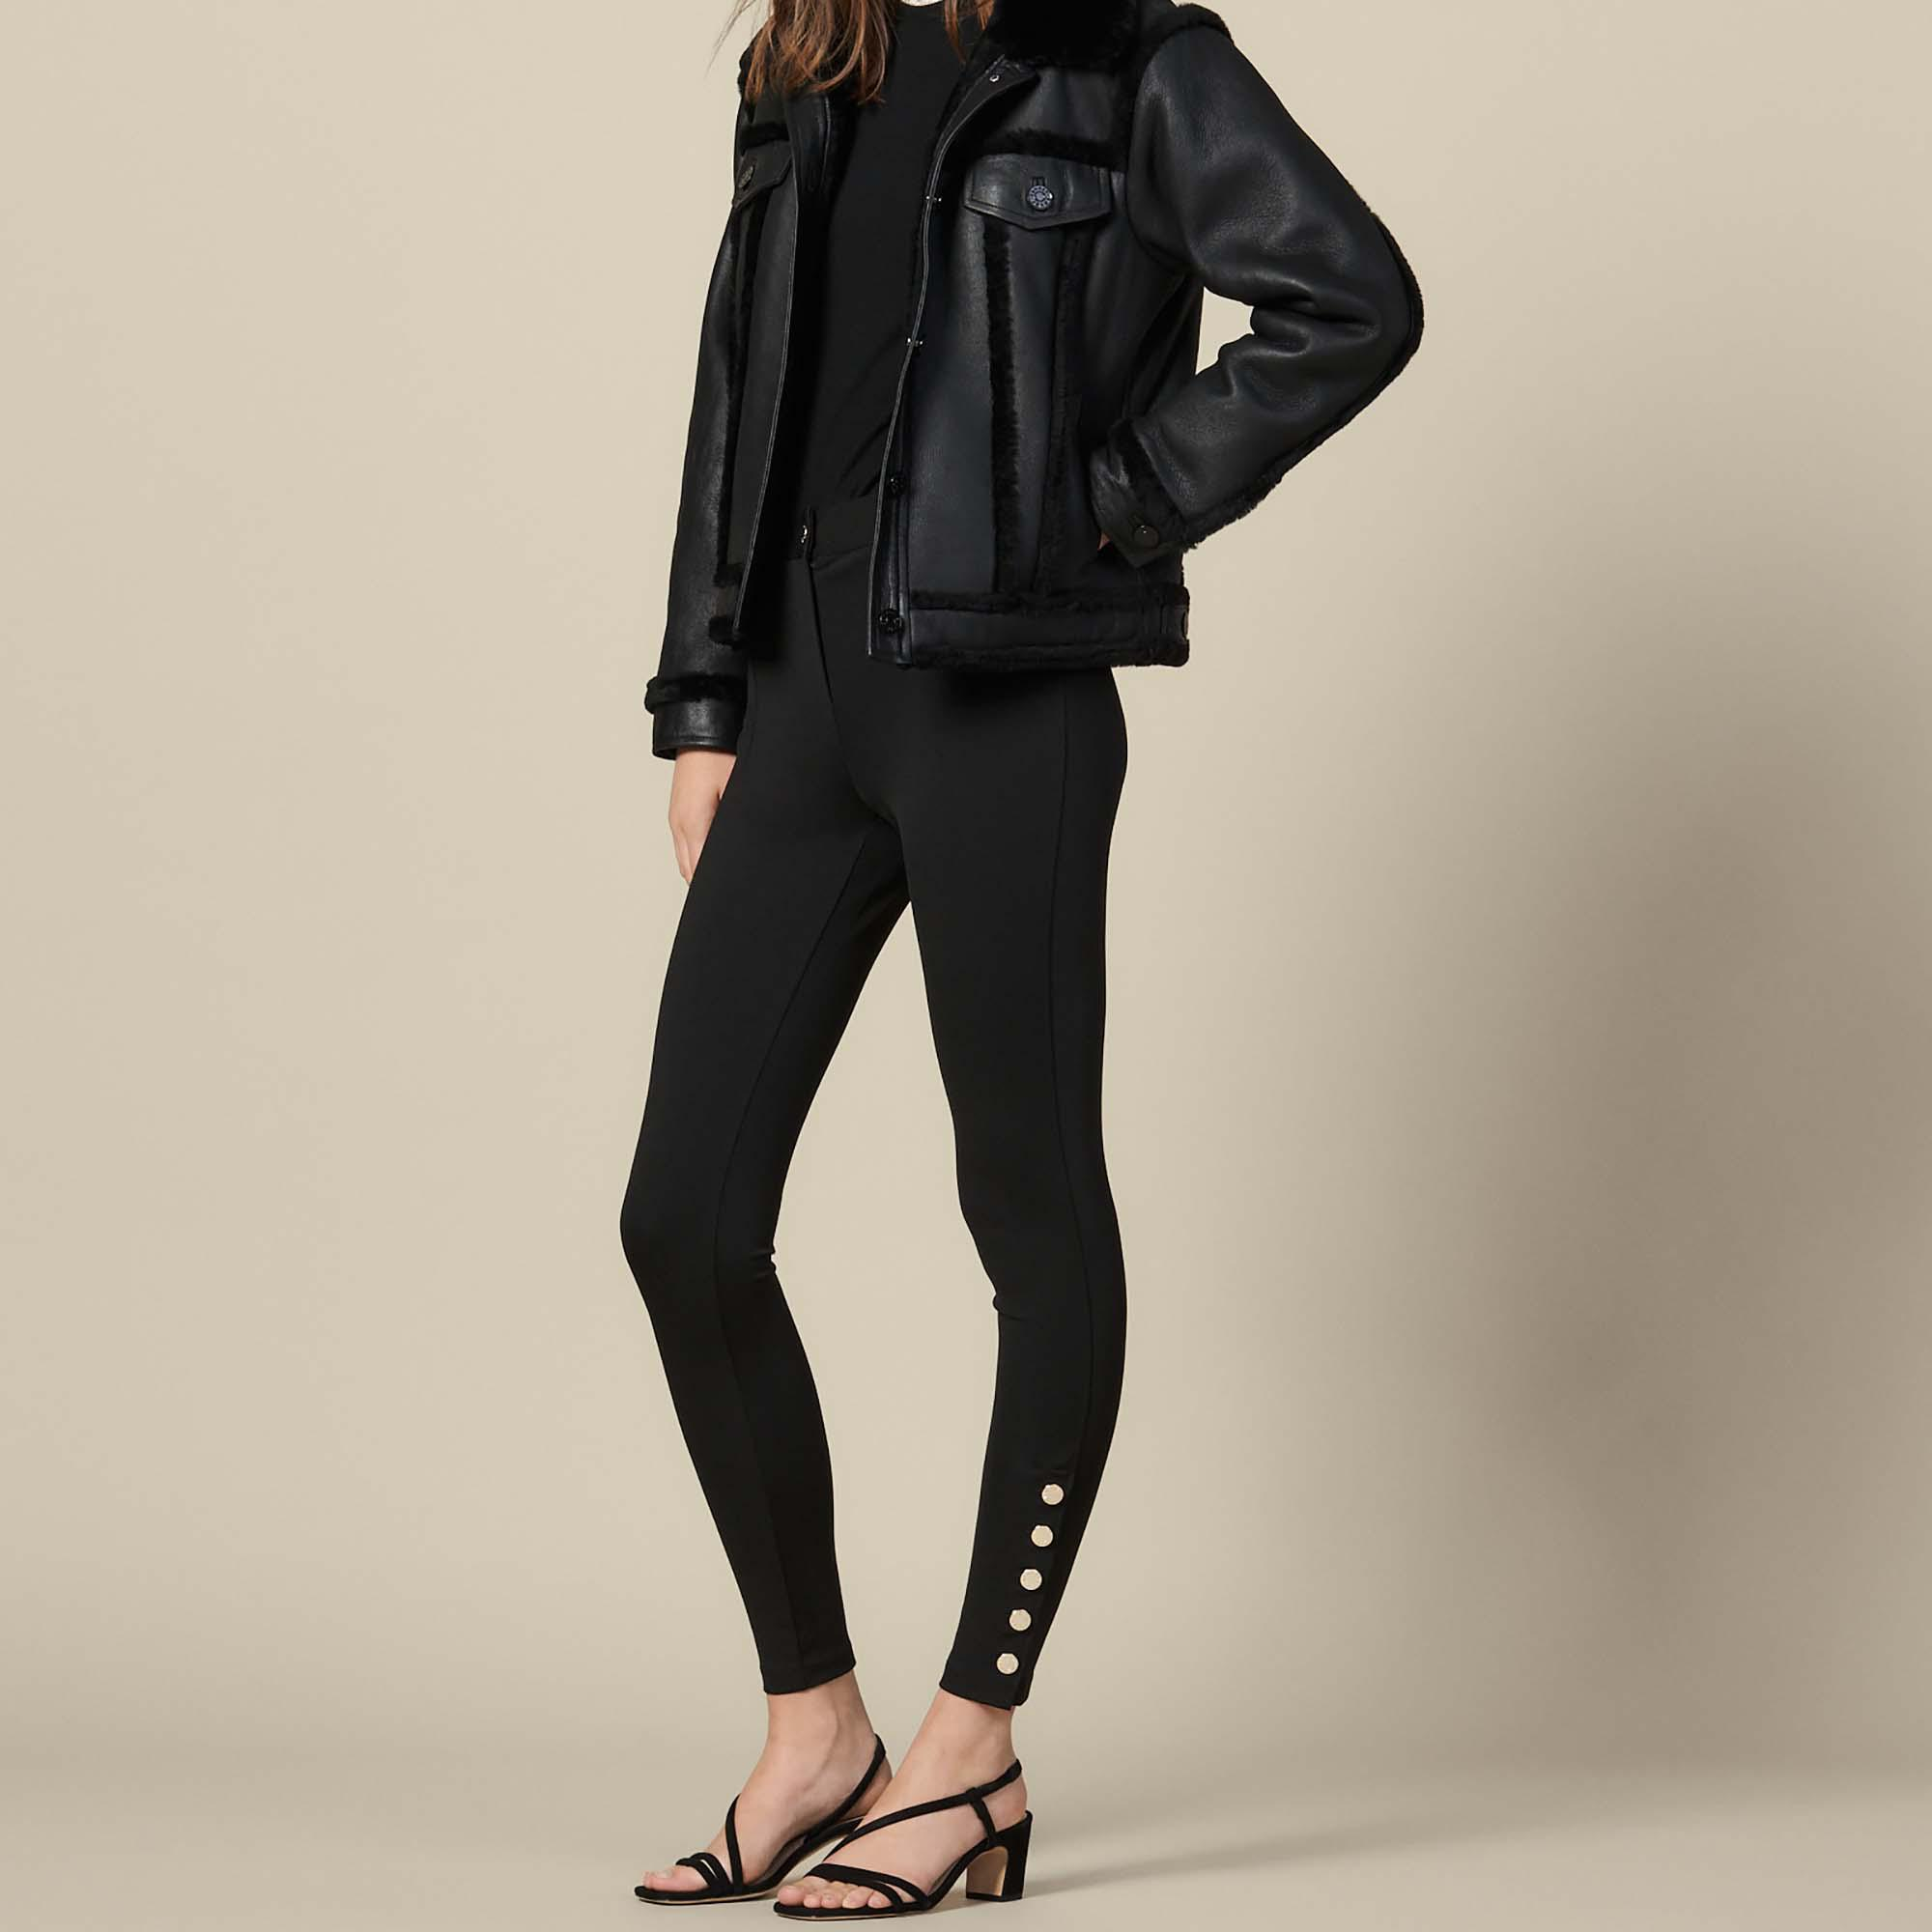 Leggings with press studs